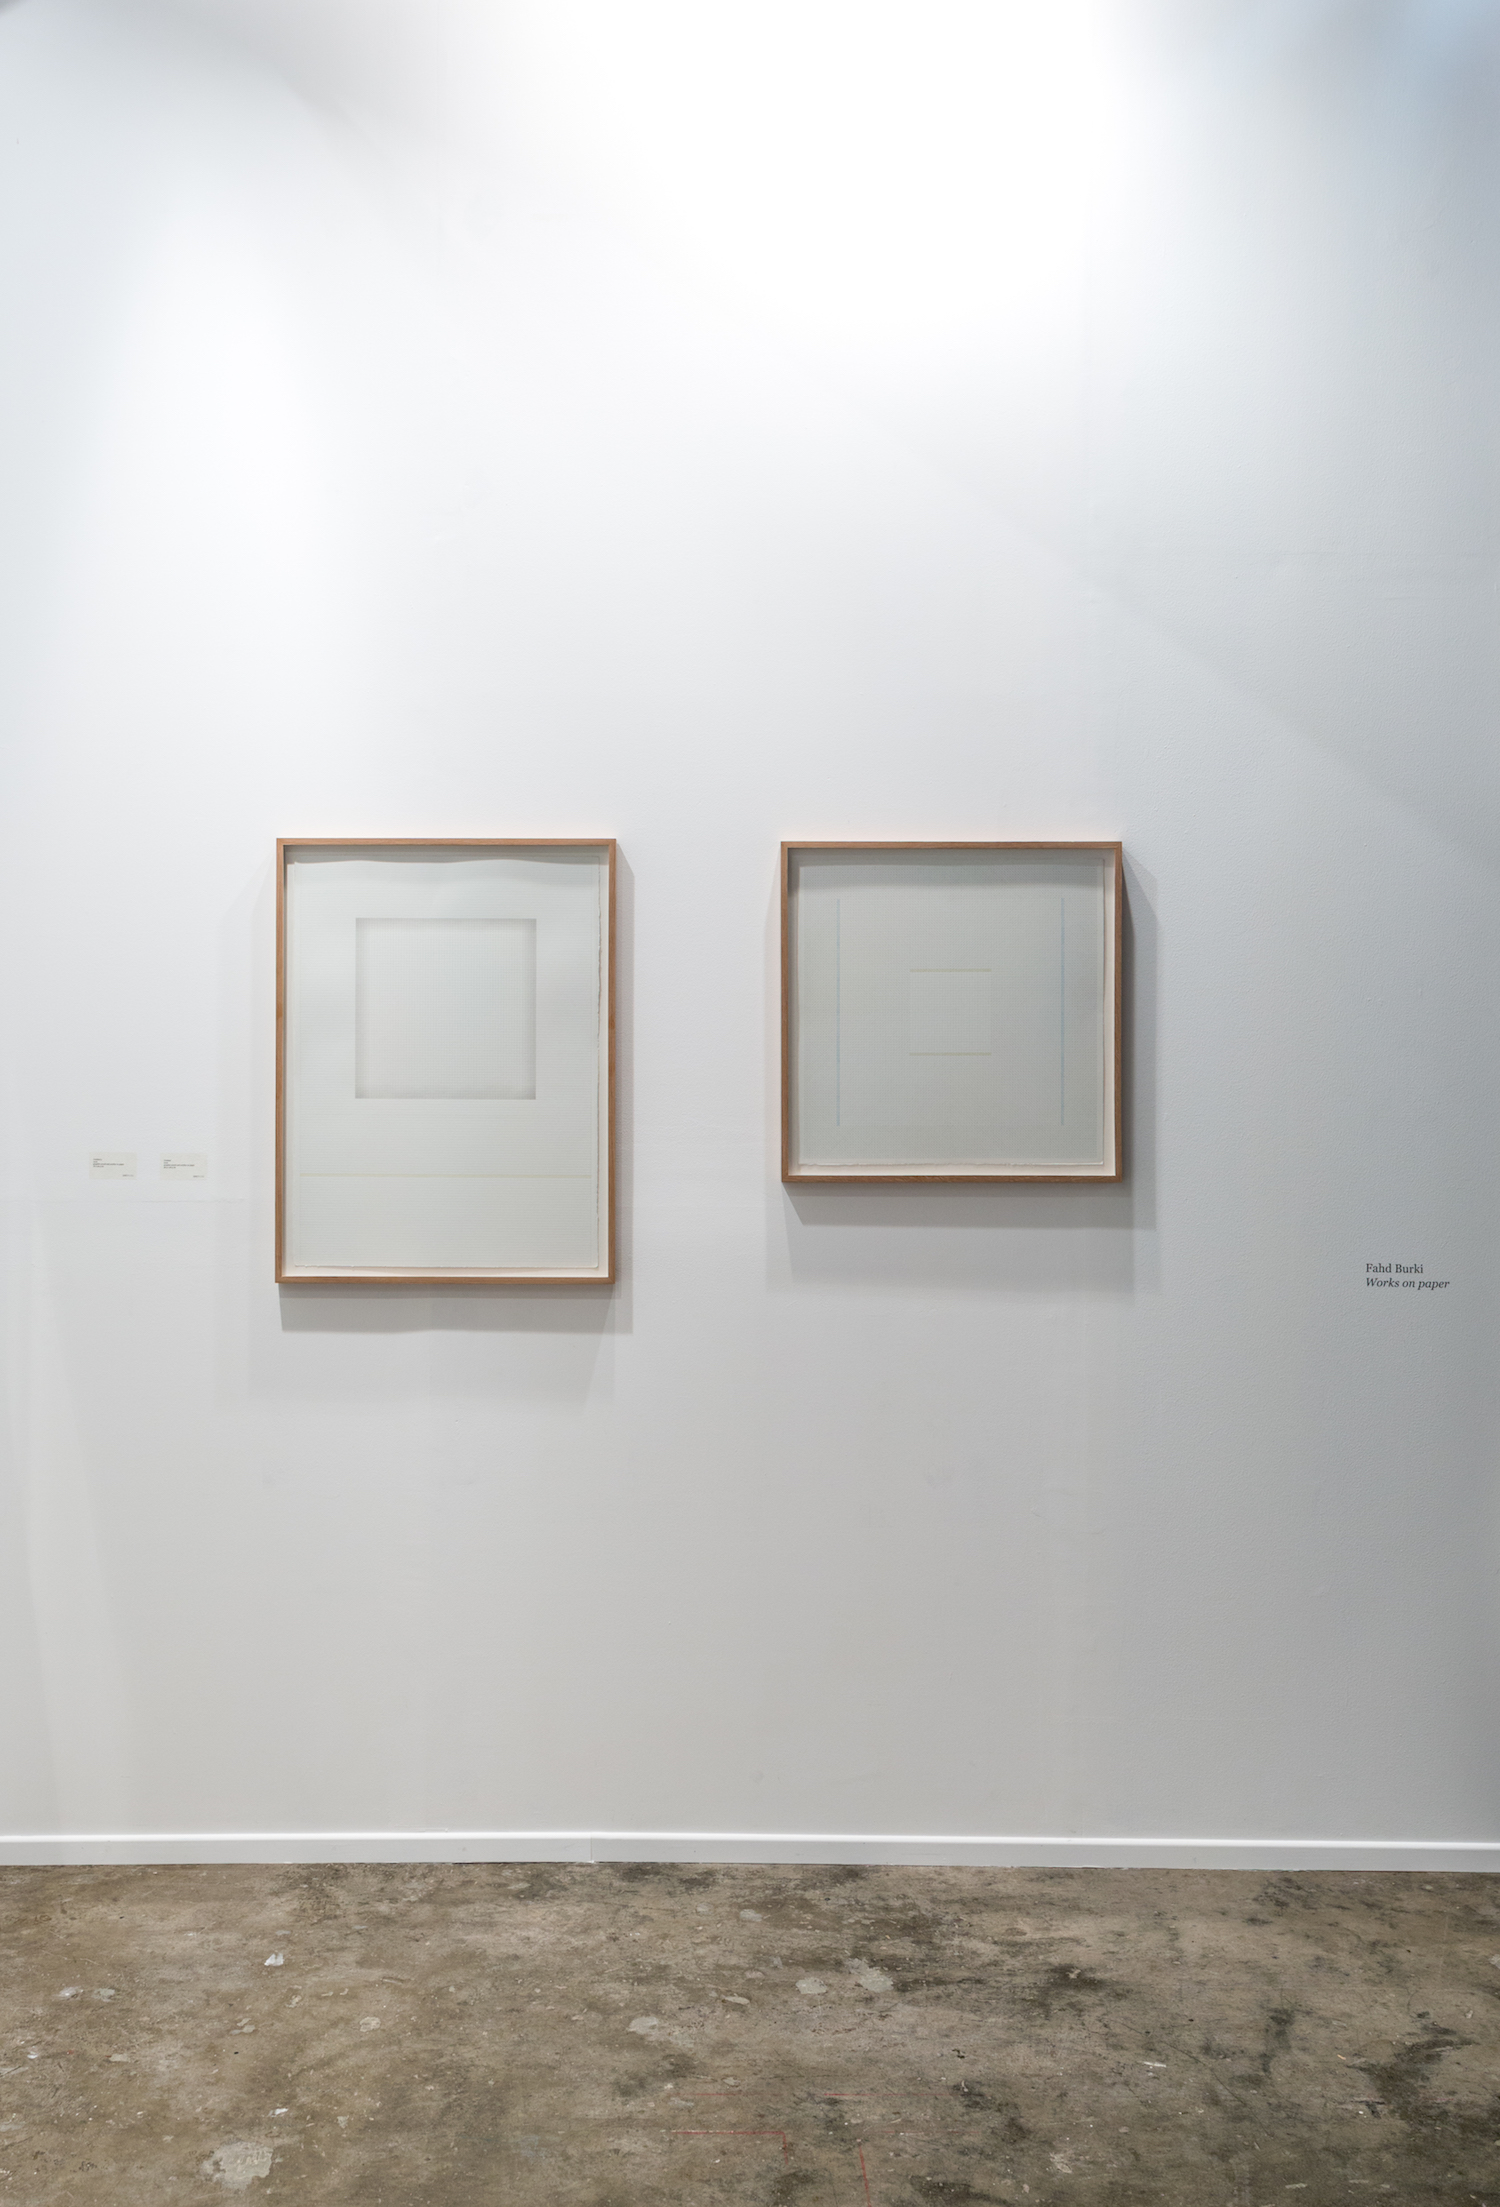 LEFT - RIGHT  LEFT: Untitled 3, 2016, graphite pencil and acrylics on paper, 76 x 56.5 cm  //  RIGHT: Untitled, 2016, graphite pencil and acrylics on paper, 56.5 x 56.5 cm